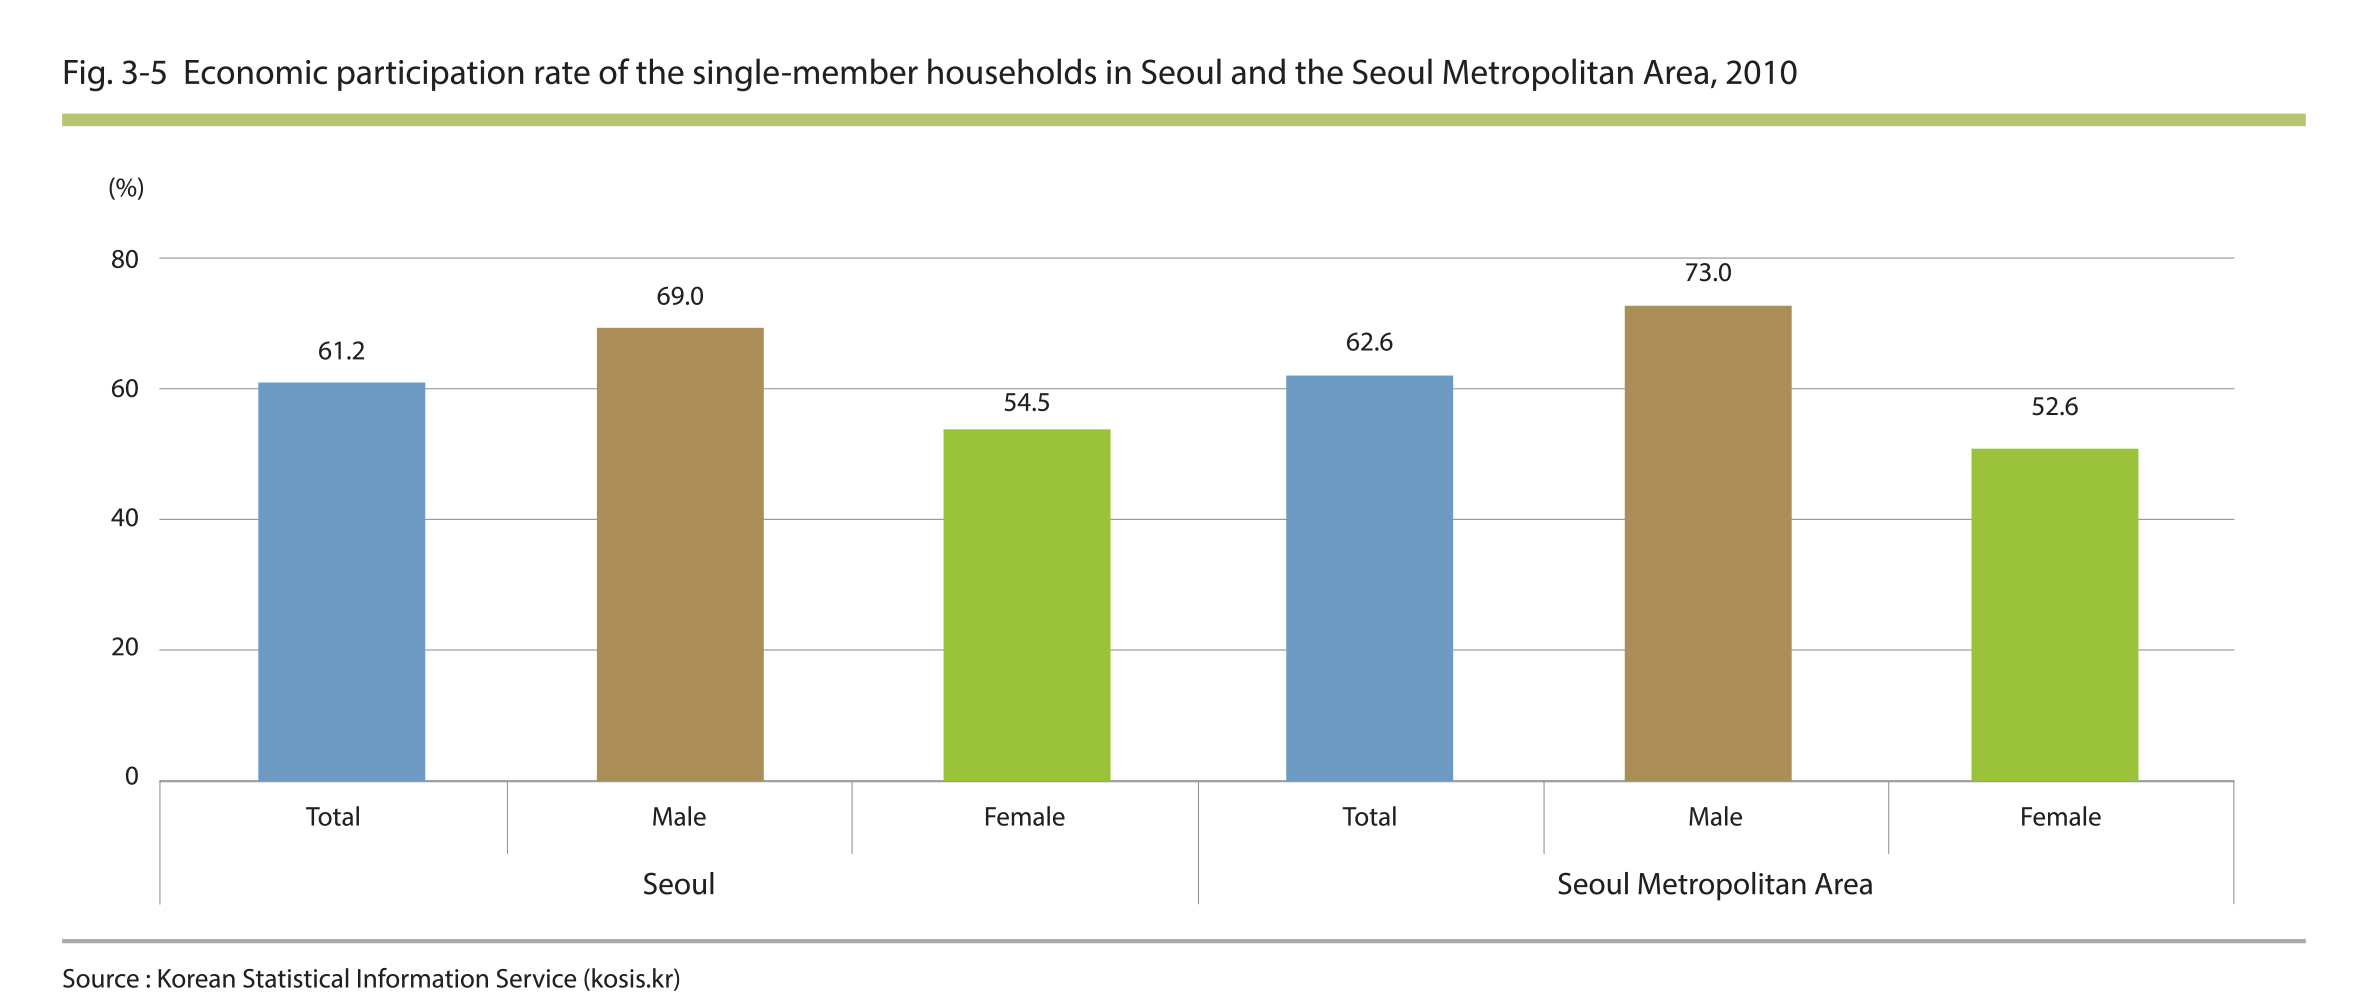 Econimic participation rate of the single-member households in Seoul and the Seoul Metropolitan Area, 2010